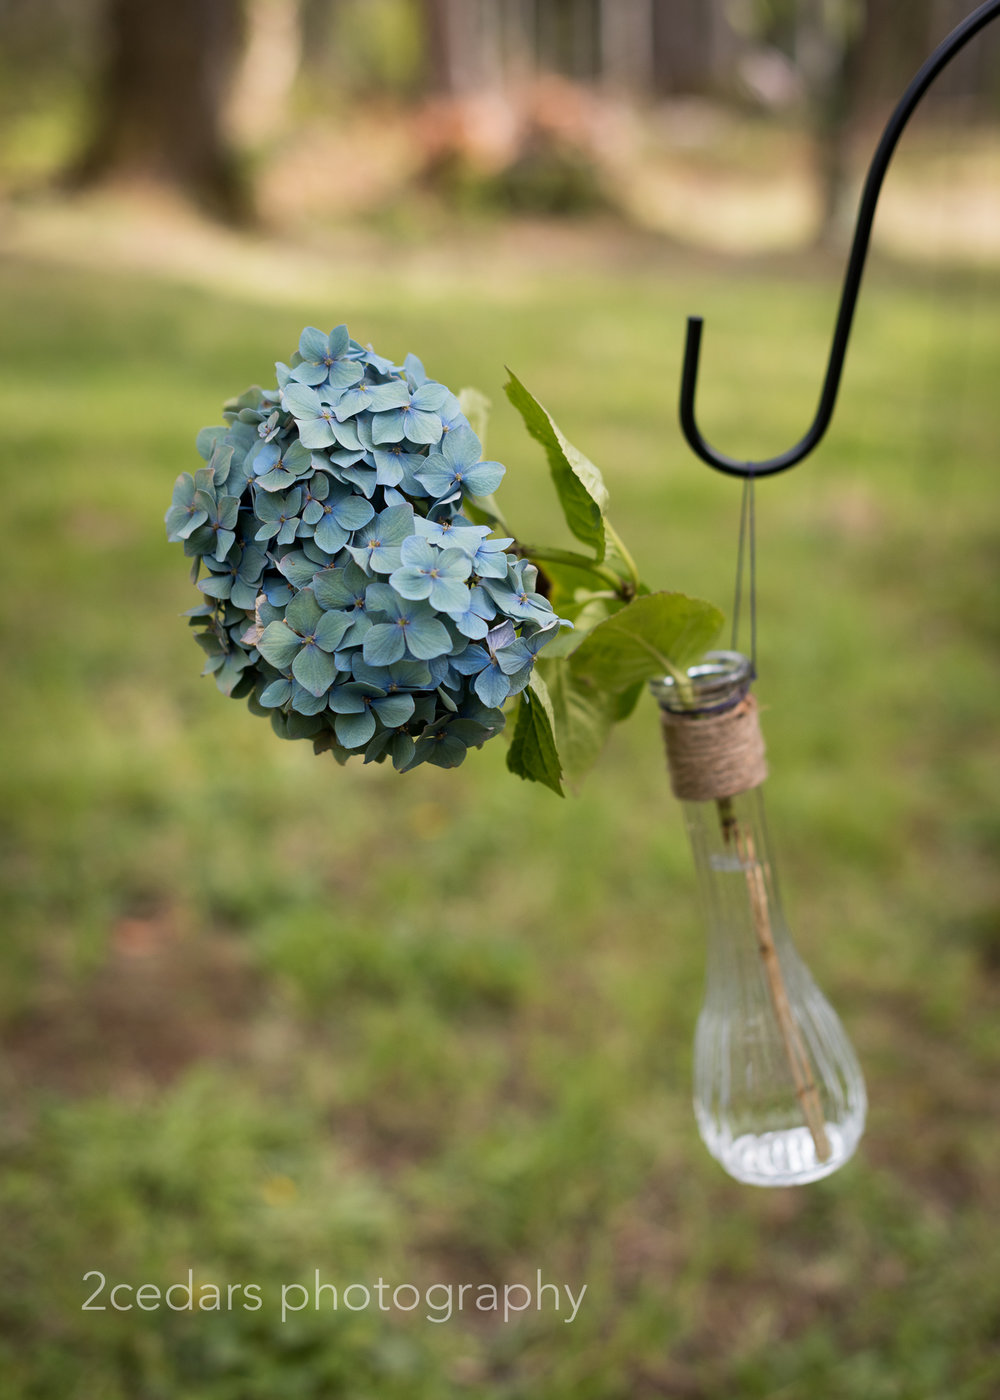 Hydrangeas in a bottle natural wedding decor